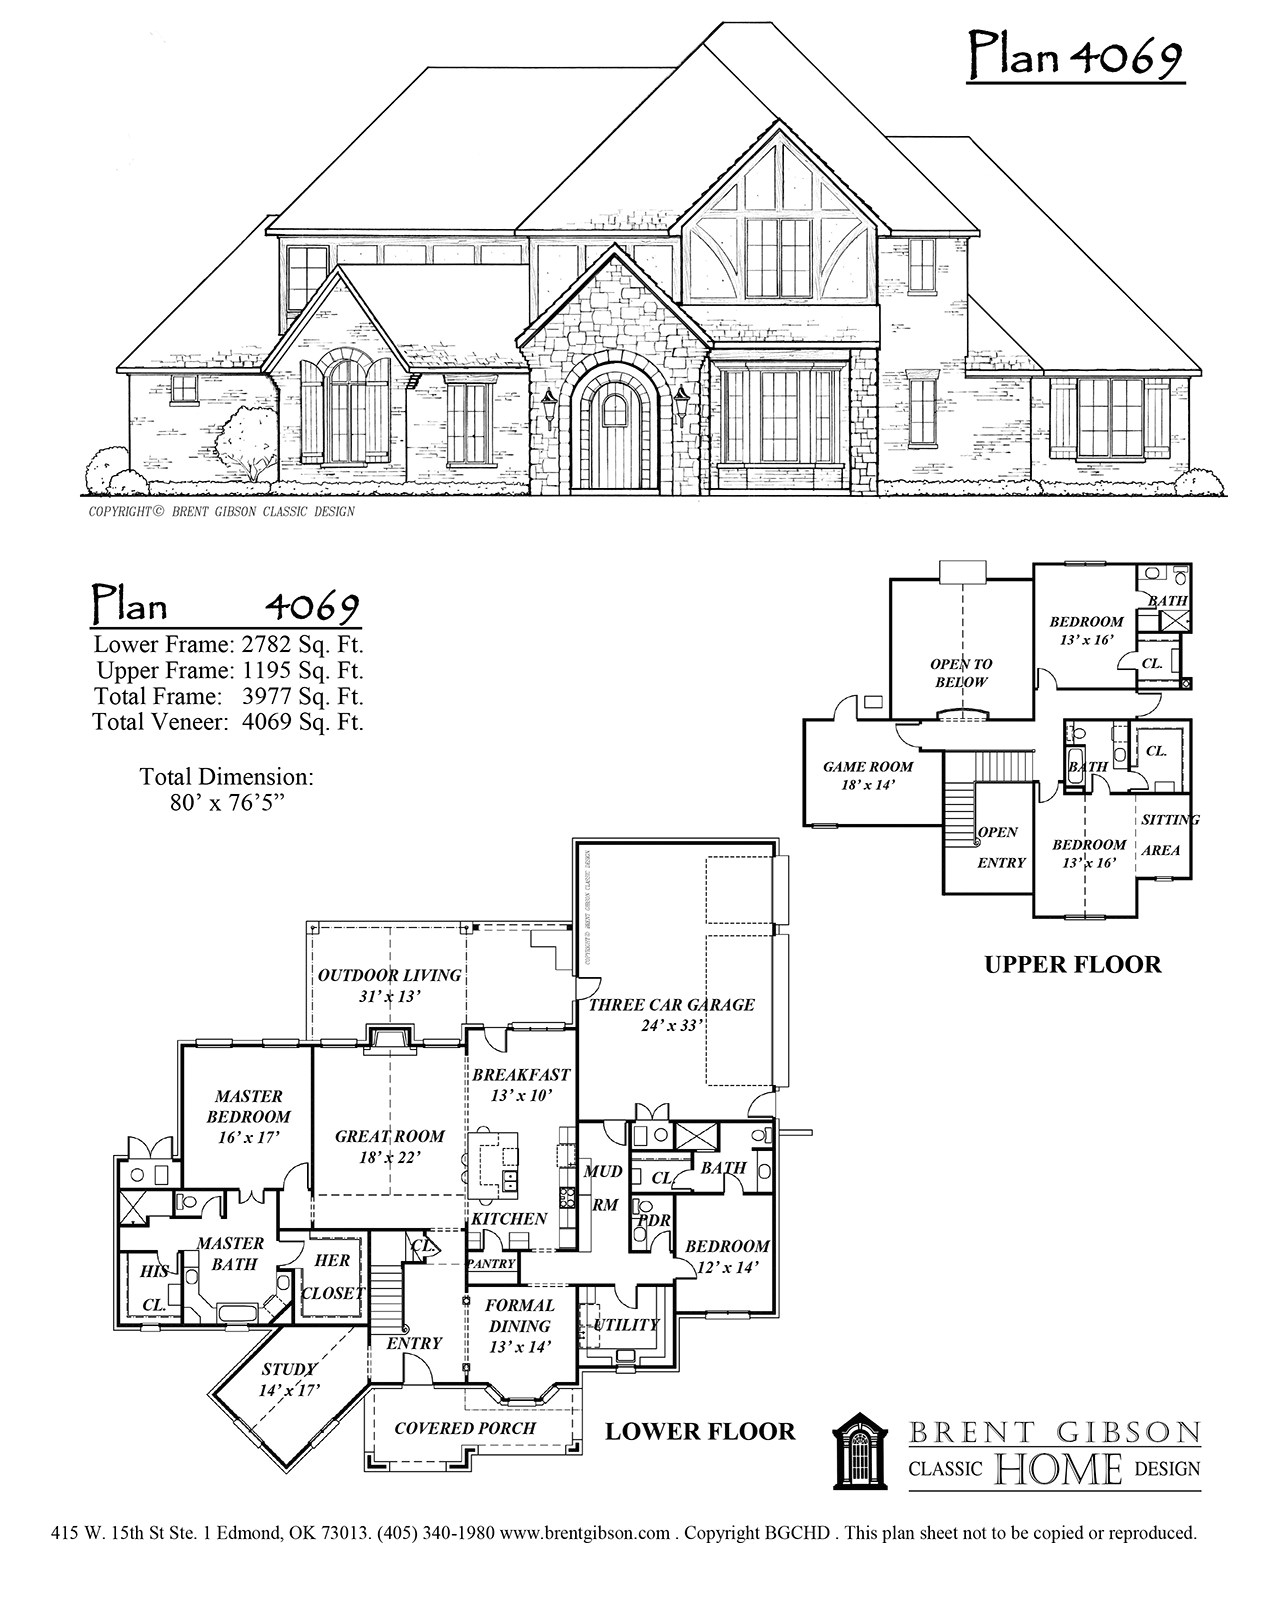 Brent Gibson Home Plans Plan 4069 Brent Gibson